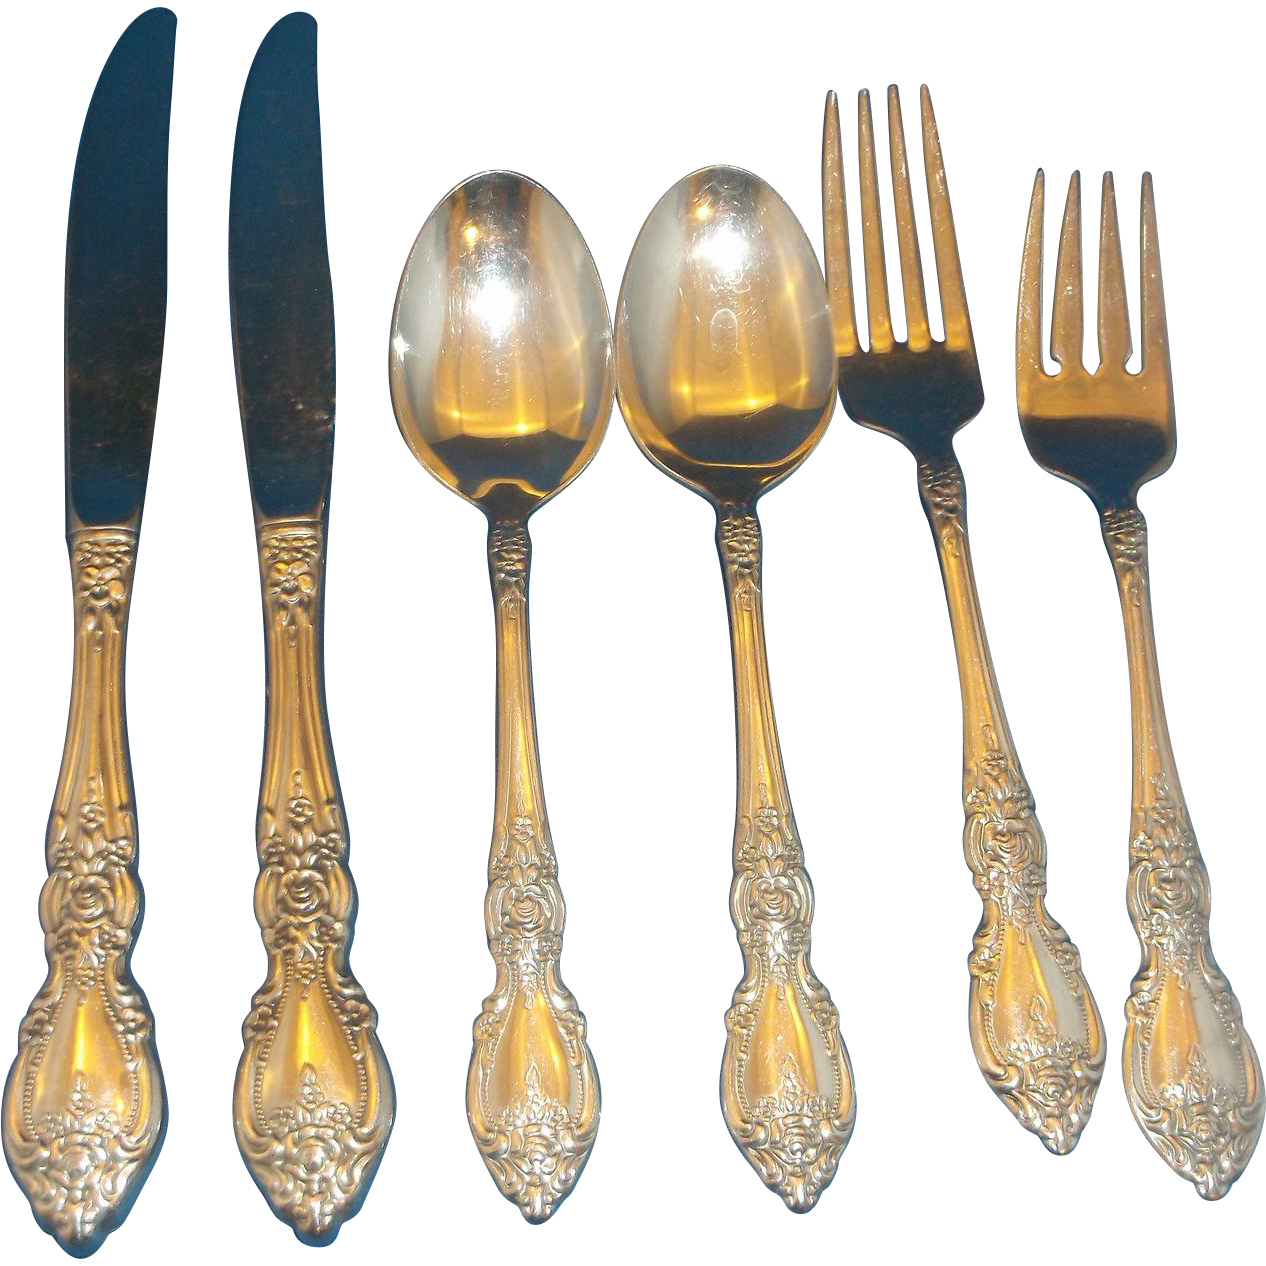 Oneida Wordsworth Stainless Flatware 6 PCS Knives Forks Spoons